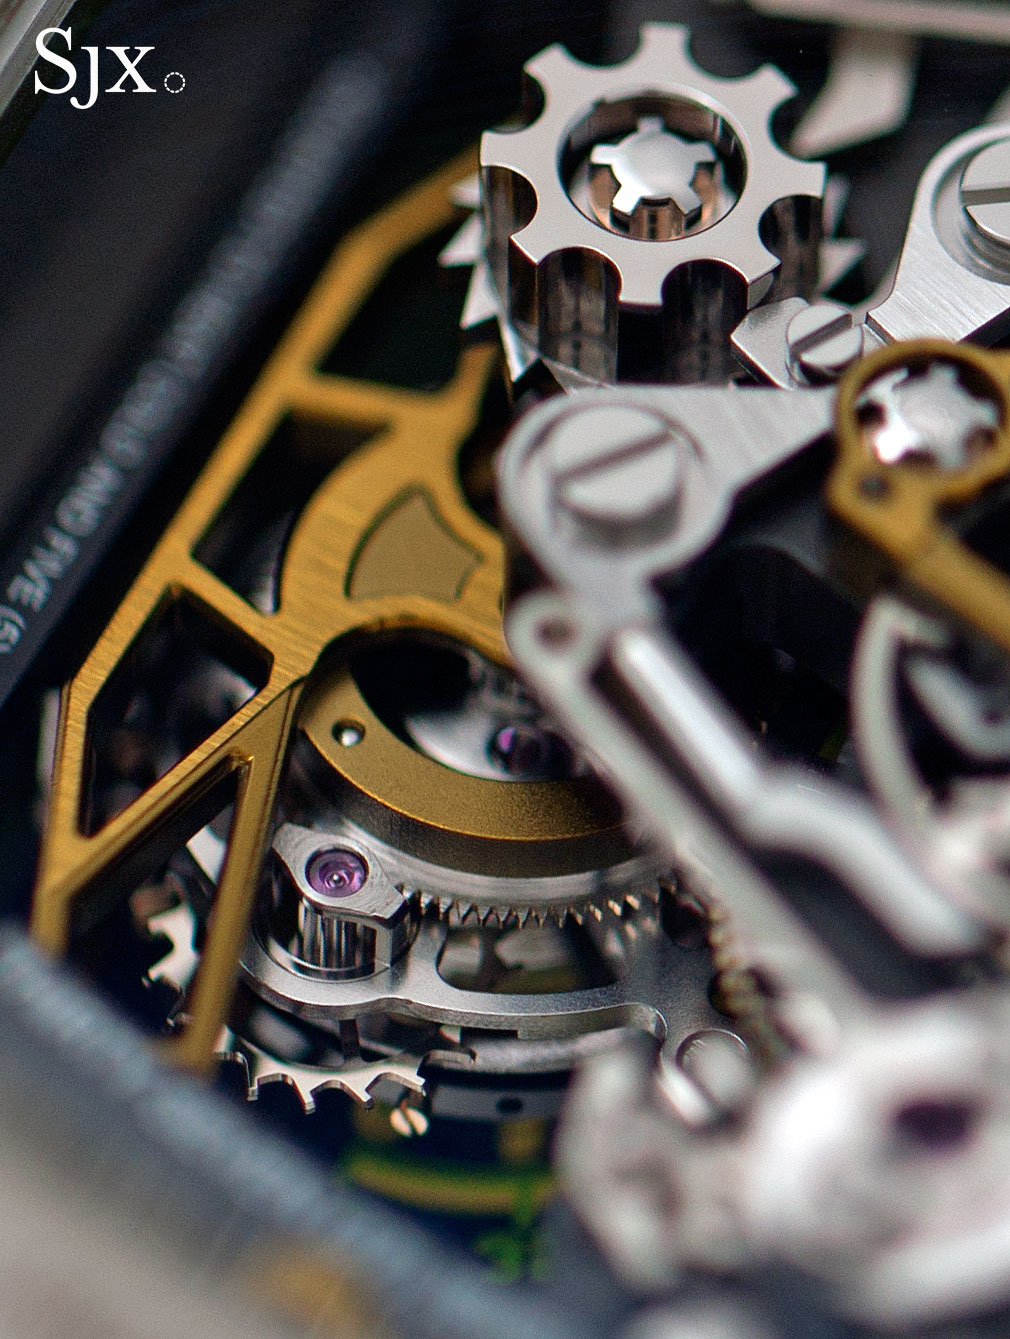 Richard Mille RM 50-02 ACJ Tourbillon Split Seconds Chronograph 18